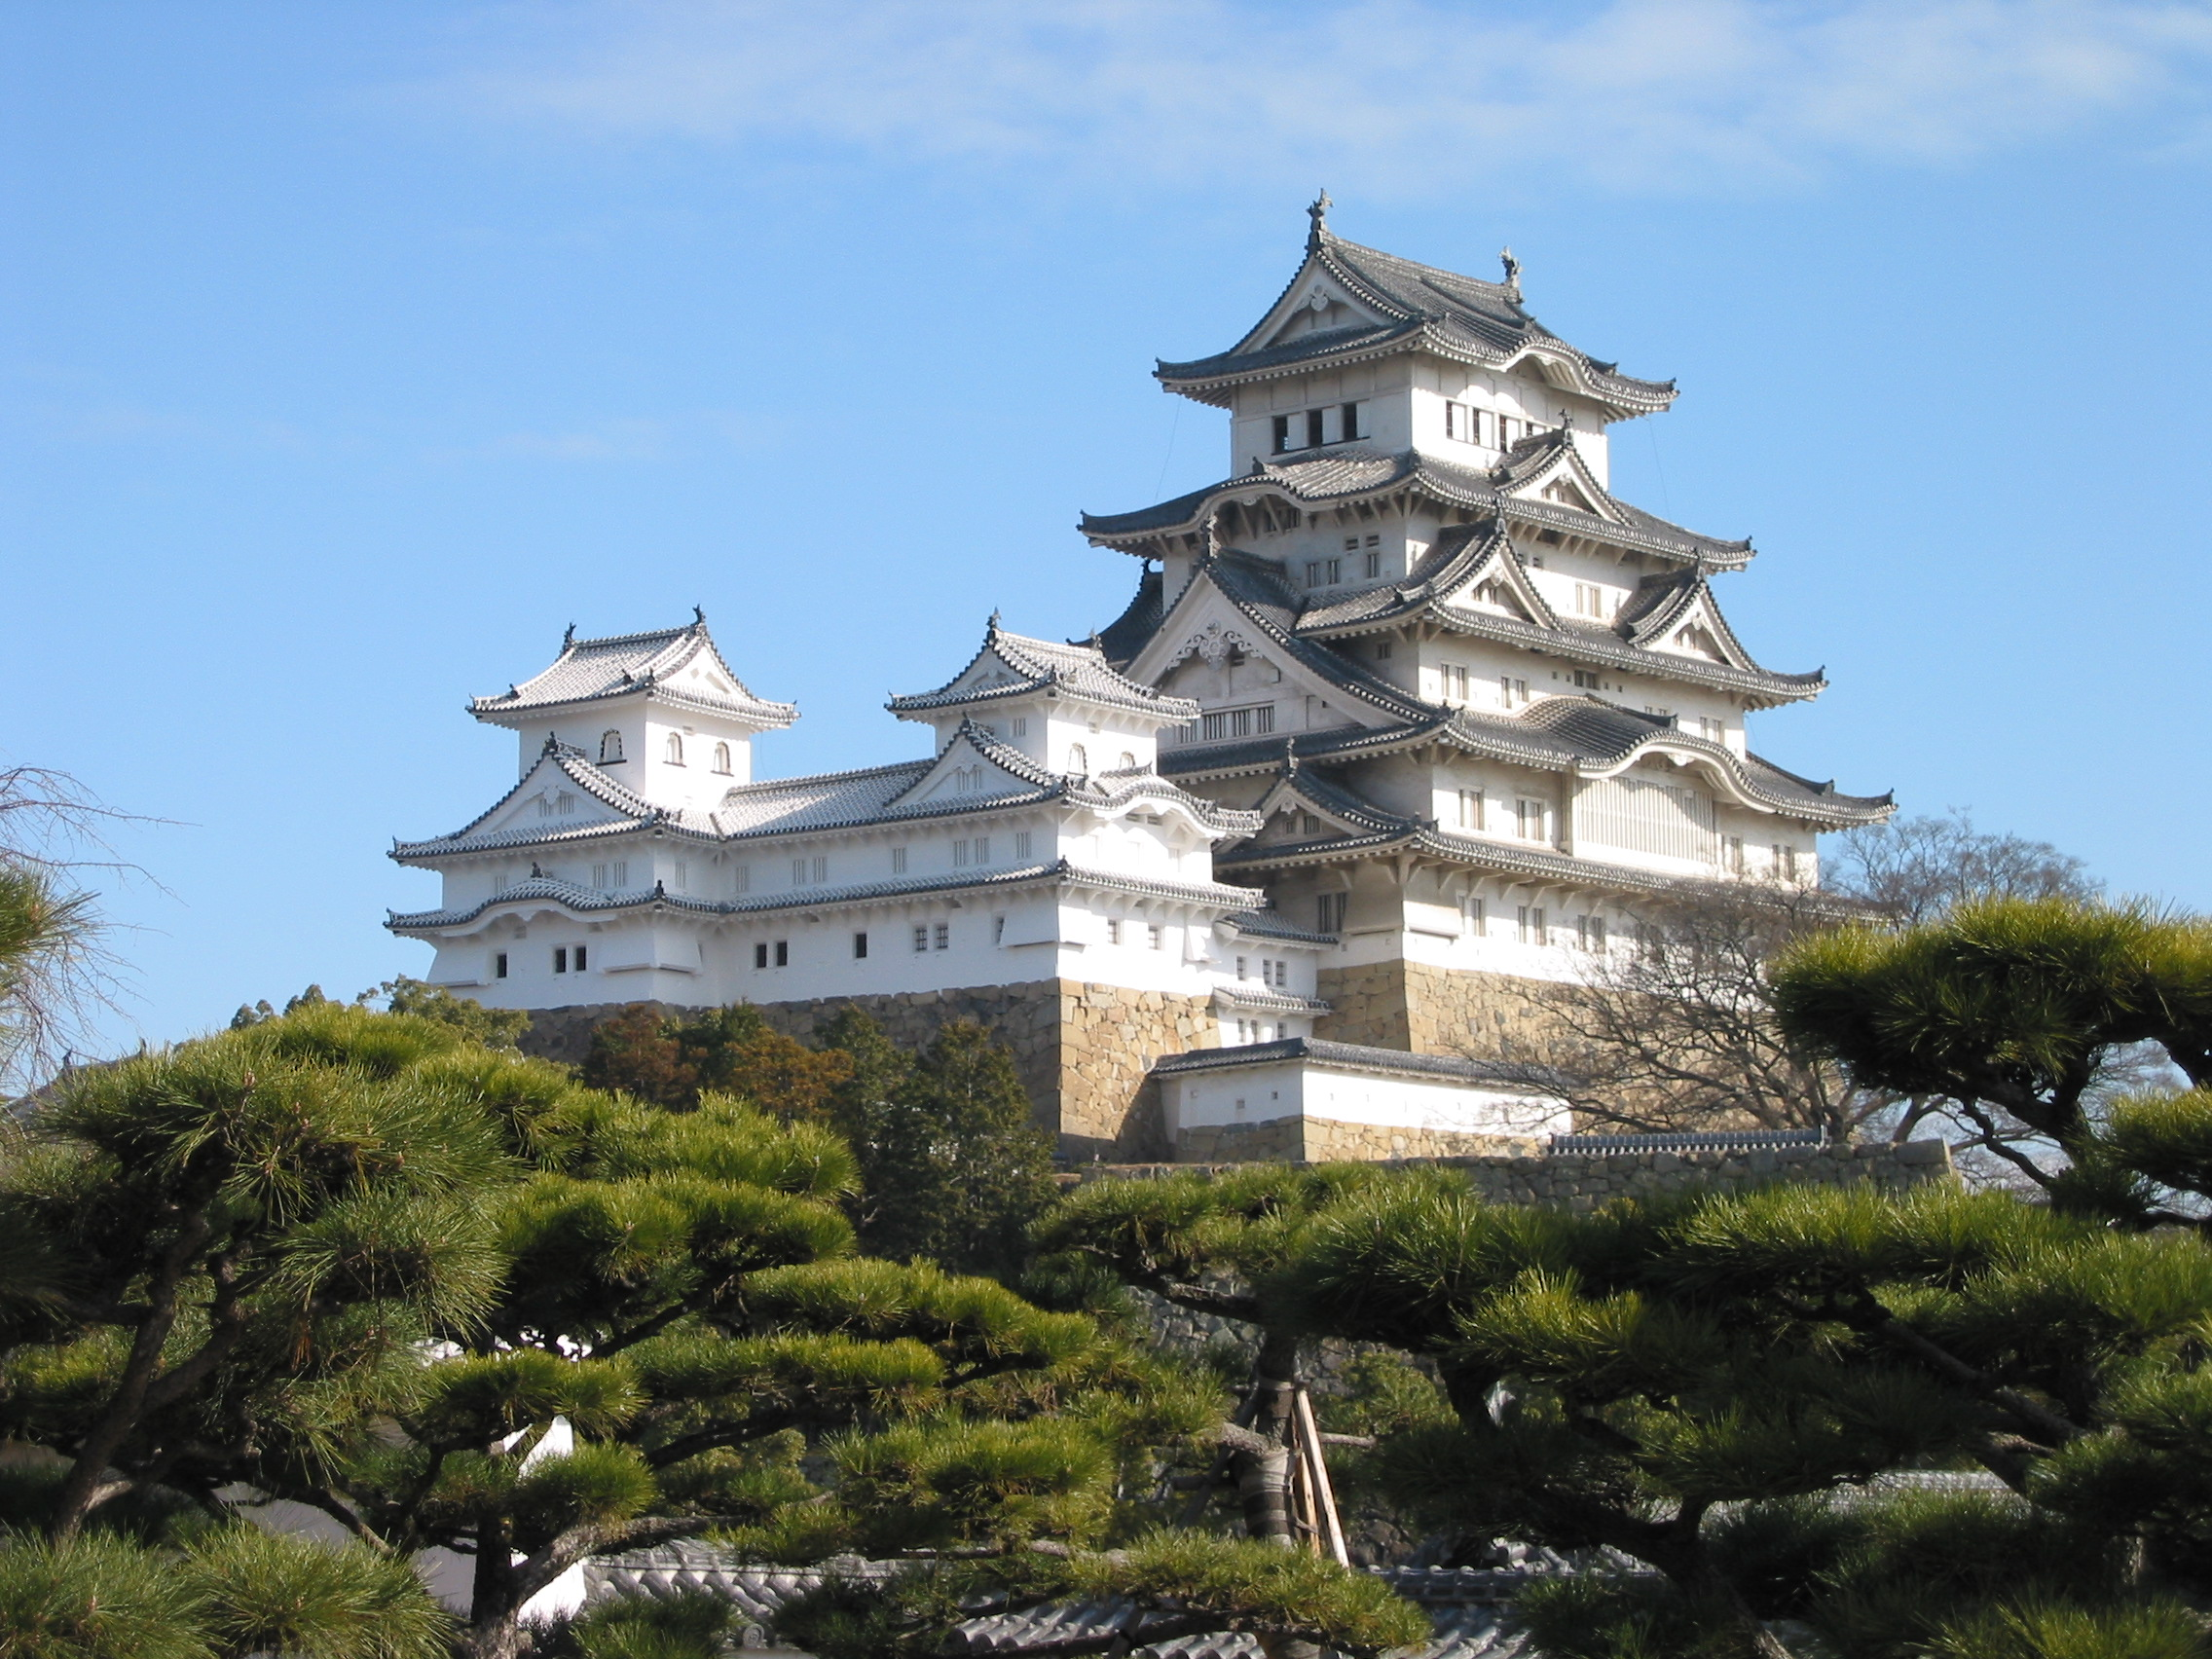 http://www.ecole-varadi.ch/wp-content/uploads/Himeji_Castle_The_Keep_Towers.jpg